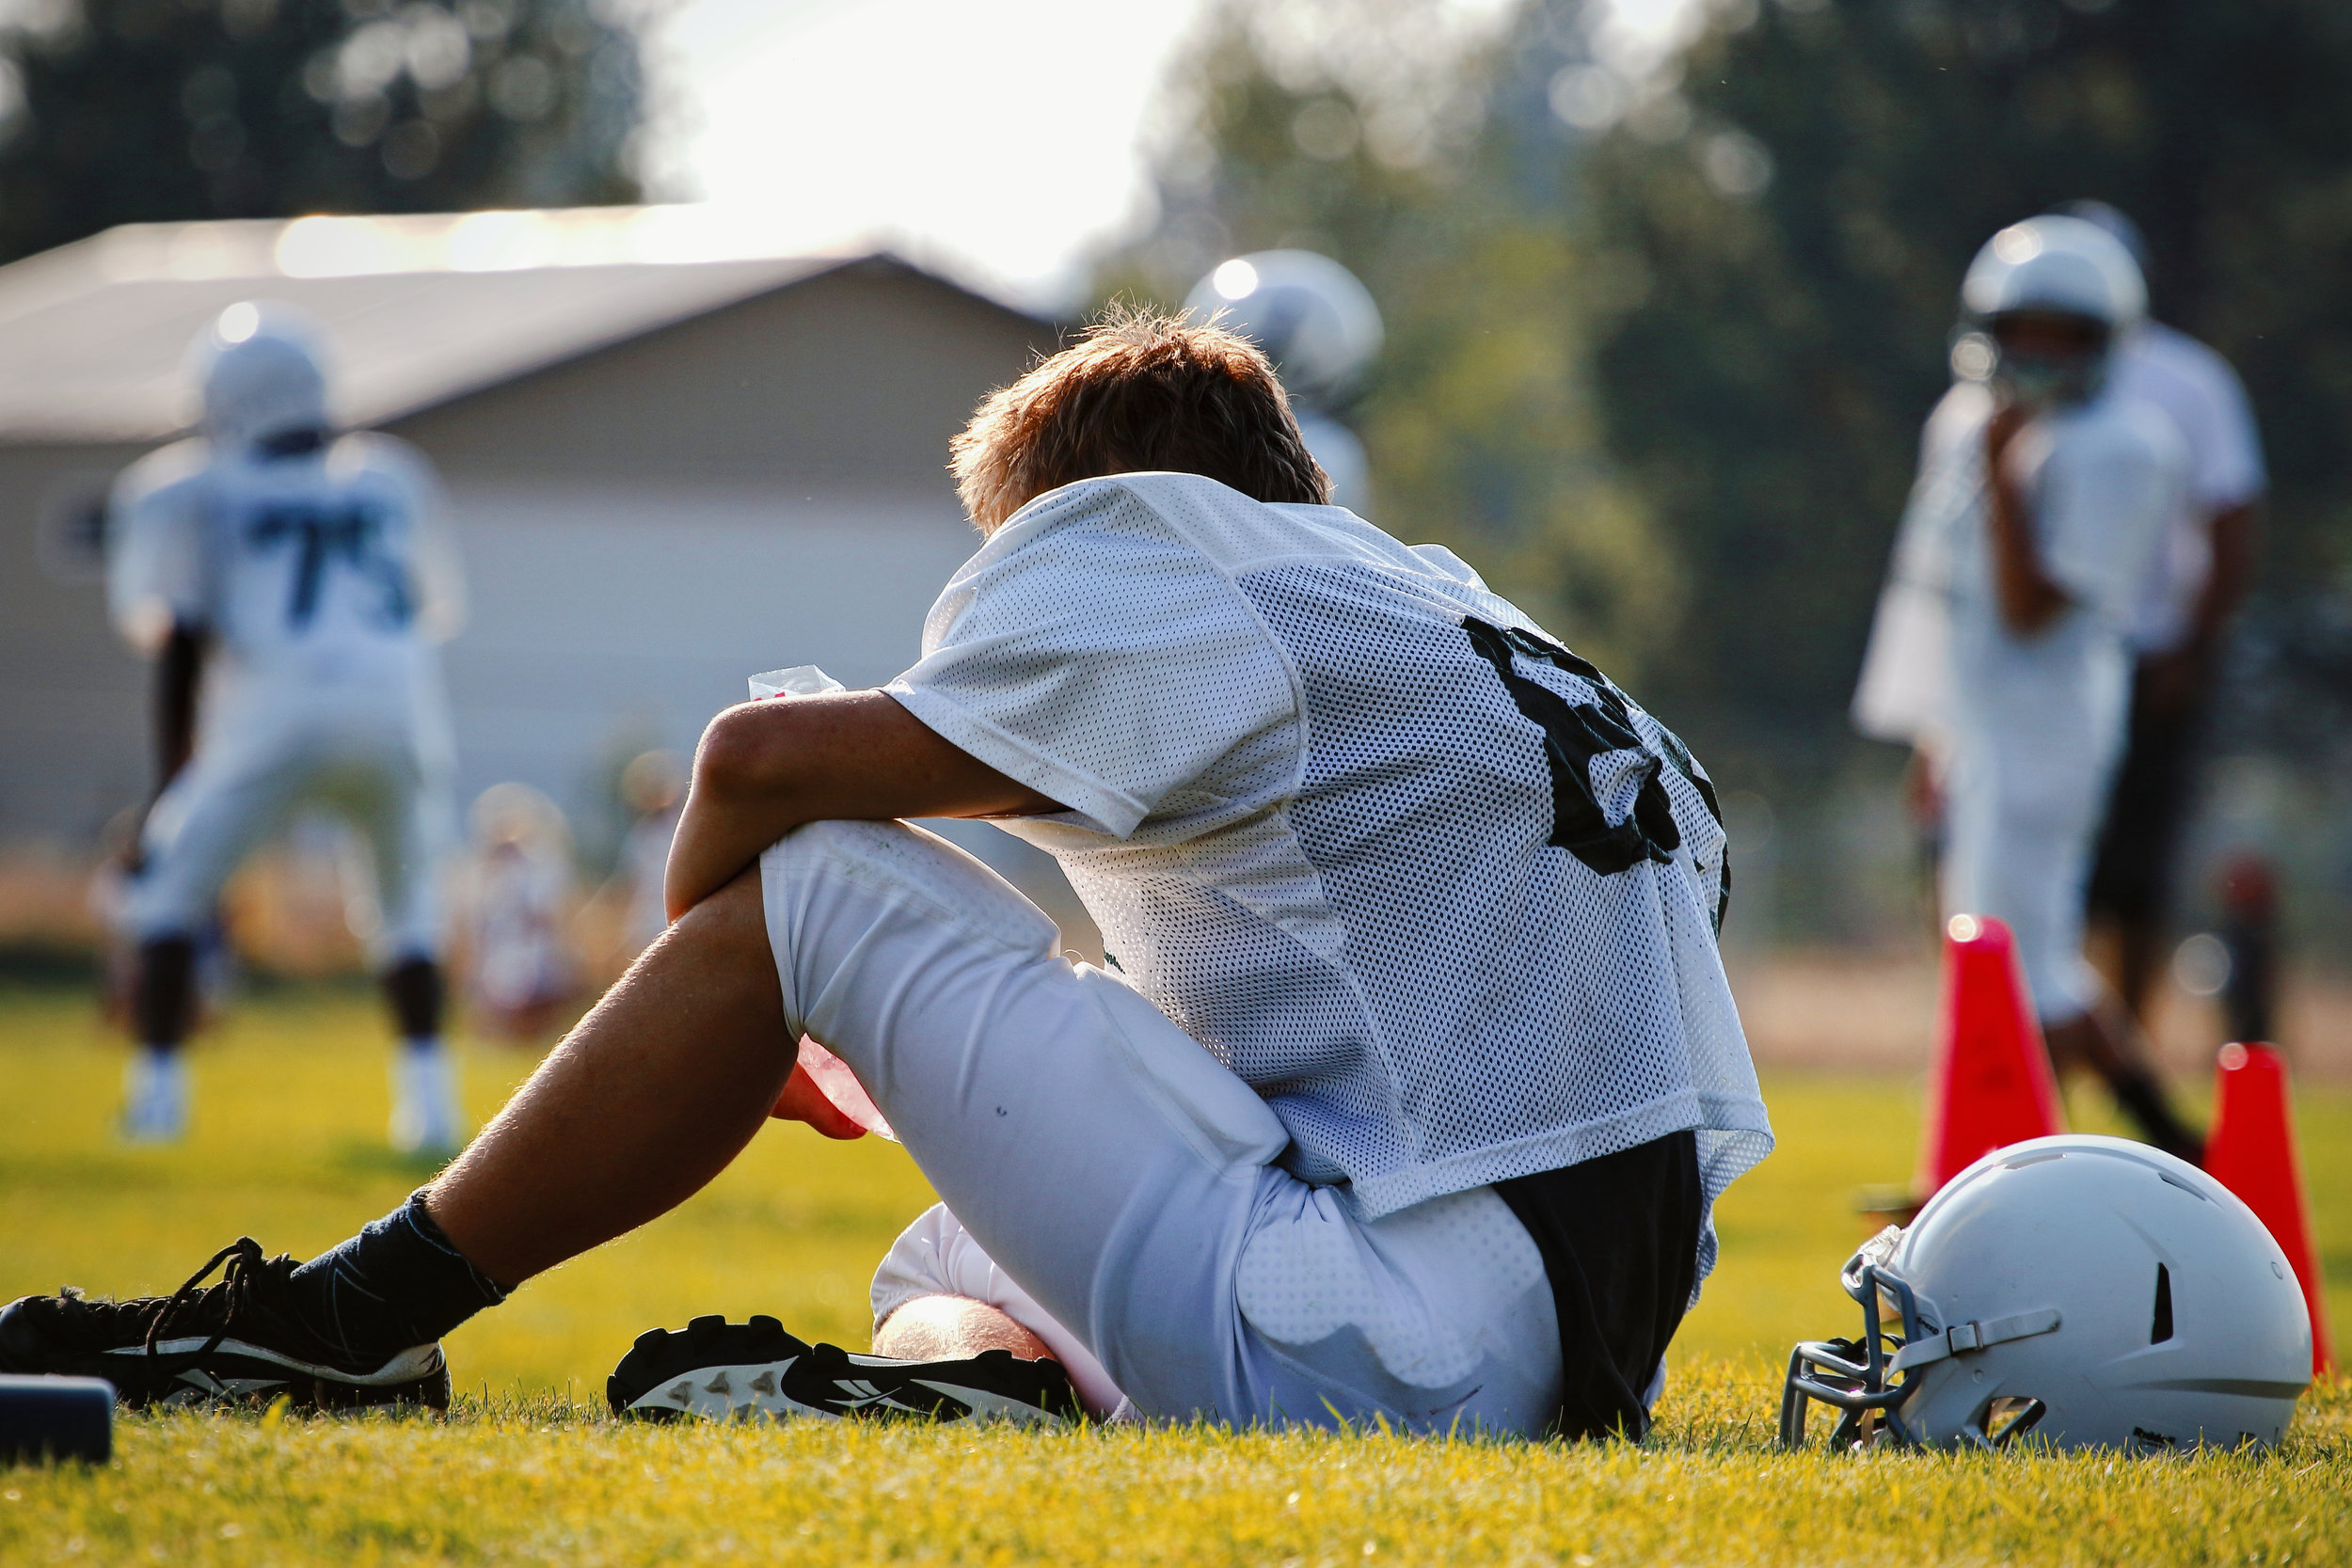 Help For Concussed Youth Athletes - When our legislature or youth sports coaches do not protect your children from head and brain injuries sustained during contact sports, Brian C. Gonzalez can help. His full-scale investigations and aggressive representation hold coaches, school districts, helmet manufacturers and insurers accountable.